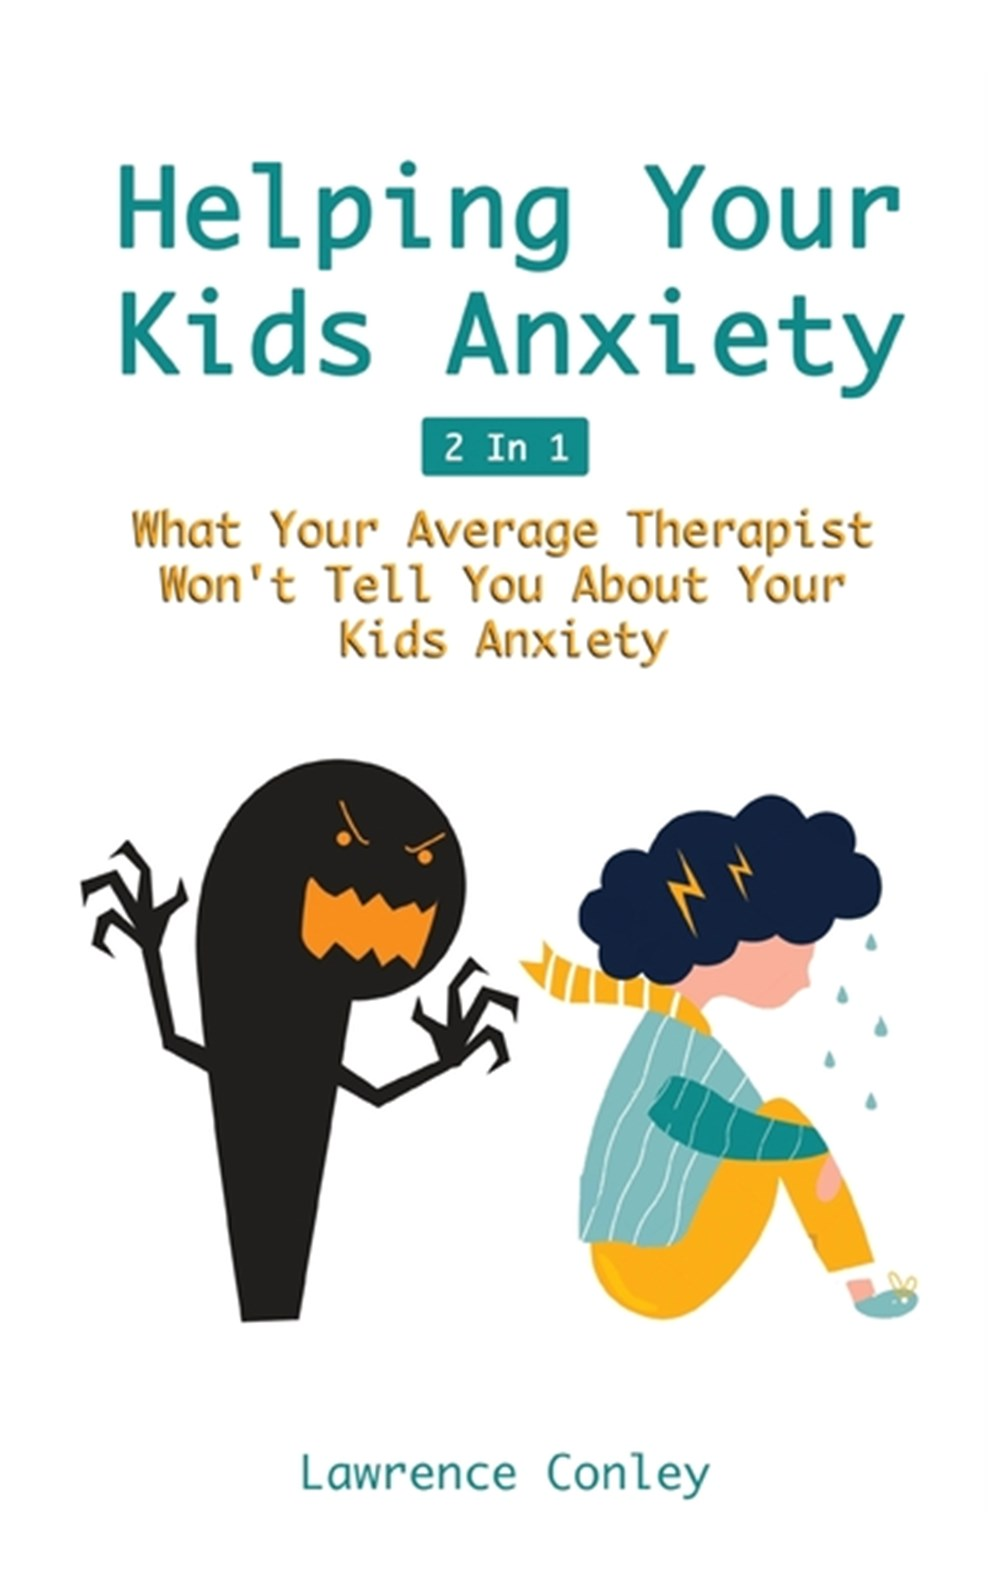 Helping Your Kids Anxiety 2 In 1 What Your Average Therapist Won't Tell You About Your Kids Anxiety